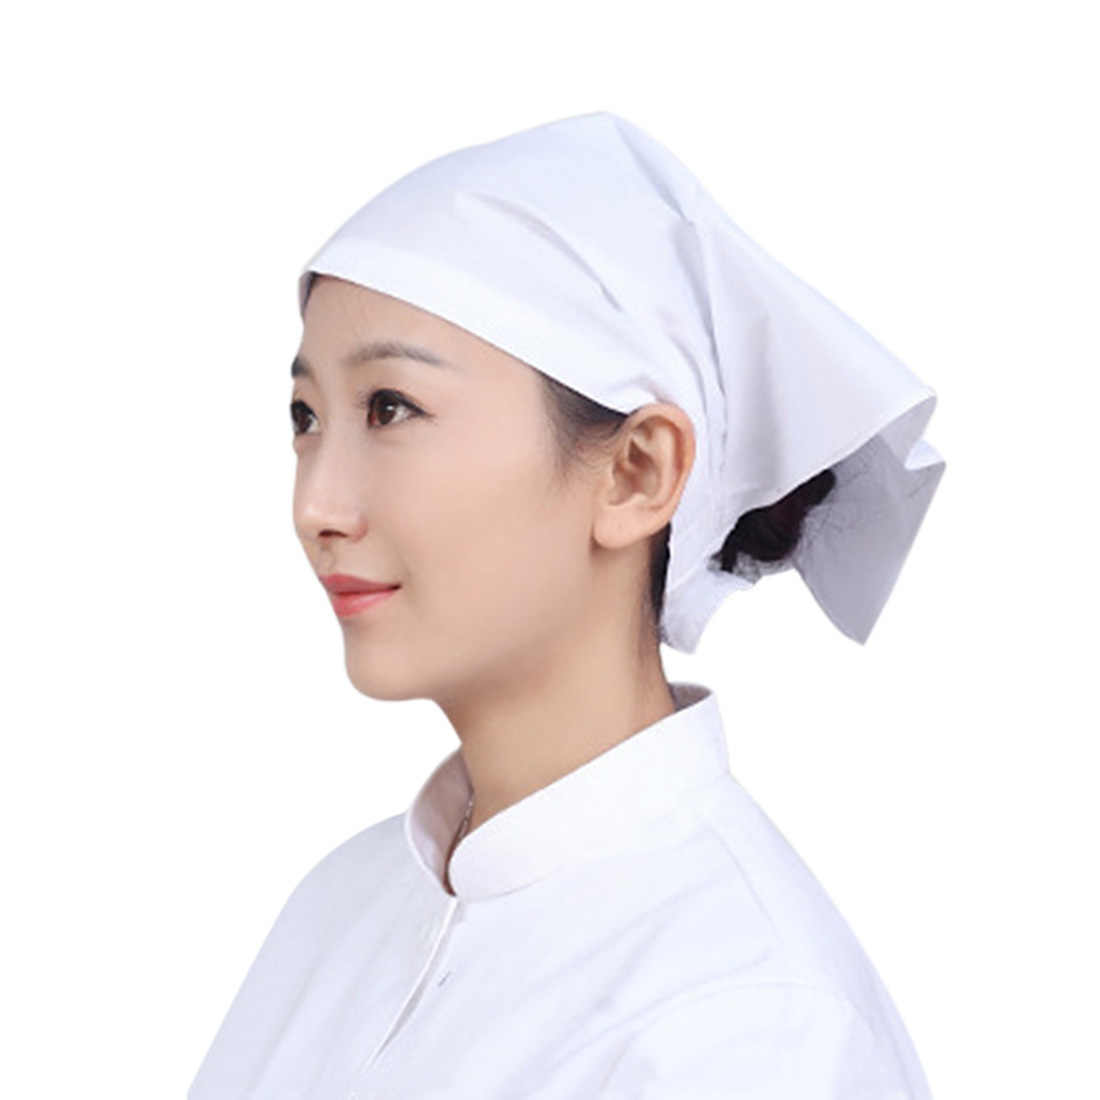 38d3e7cdd2231 Detail Feedback Questions about New Chef Hat Women Adjustable Hotel ...